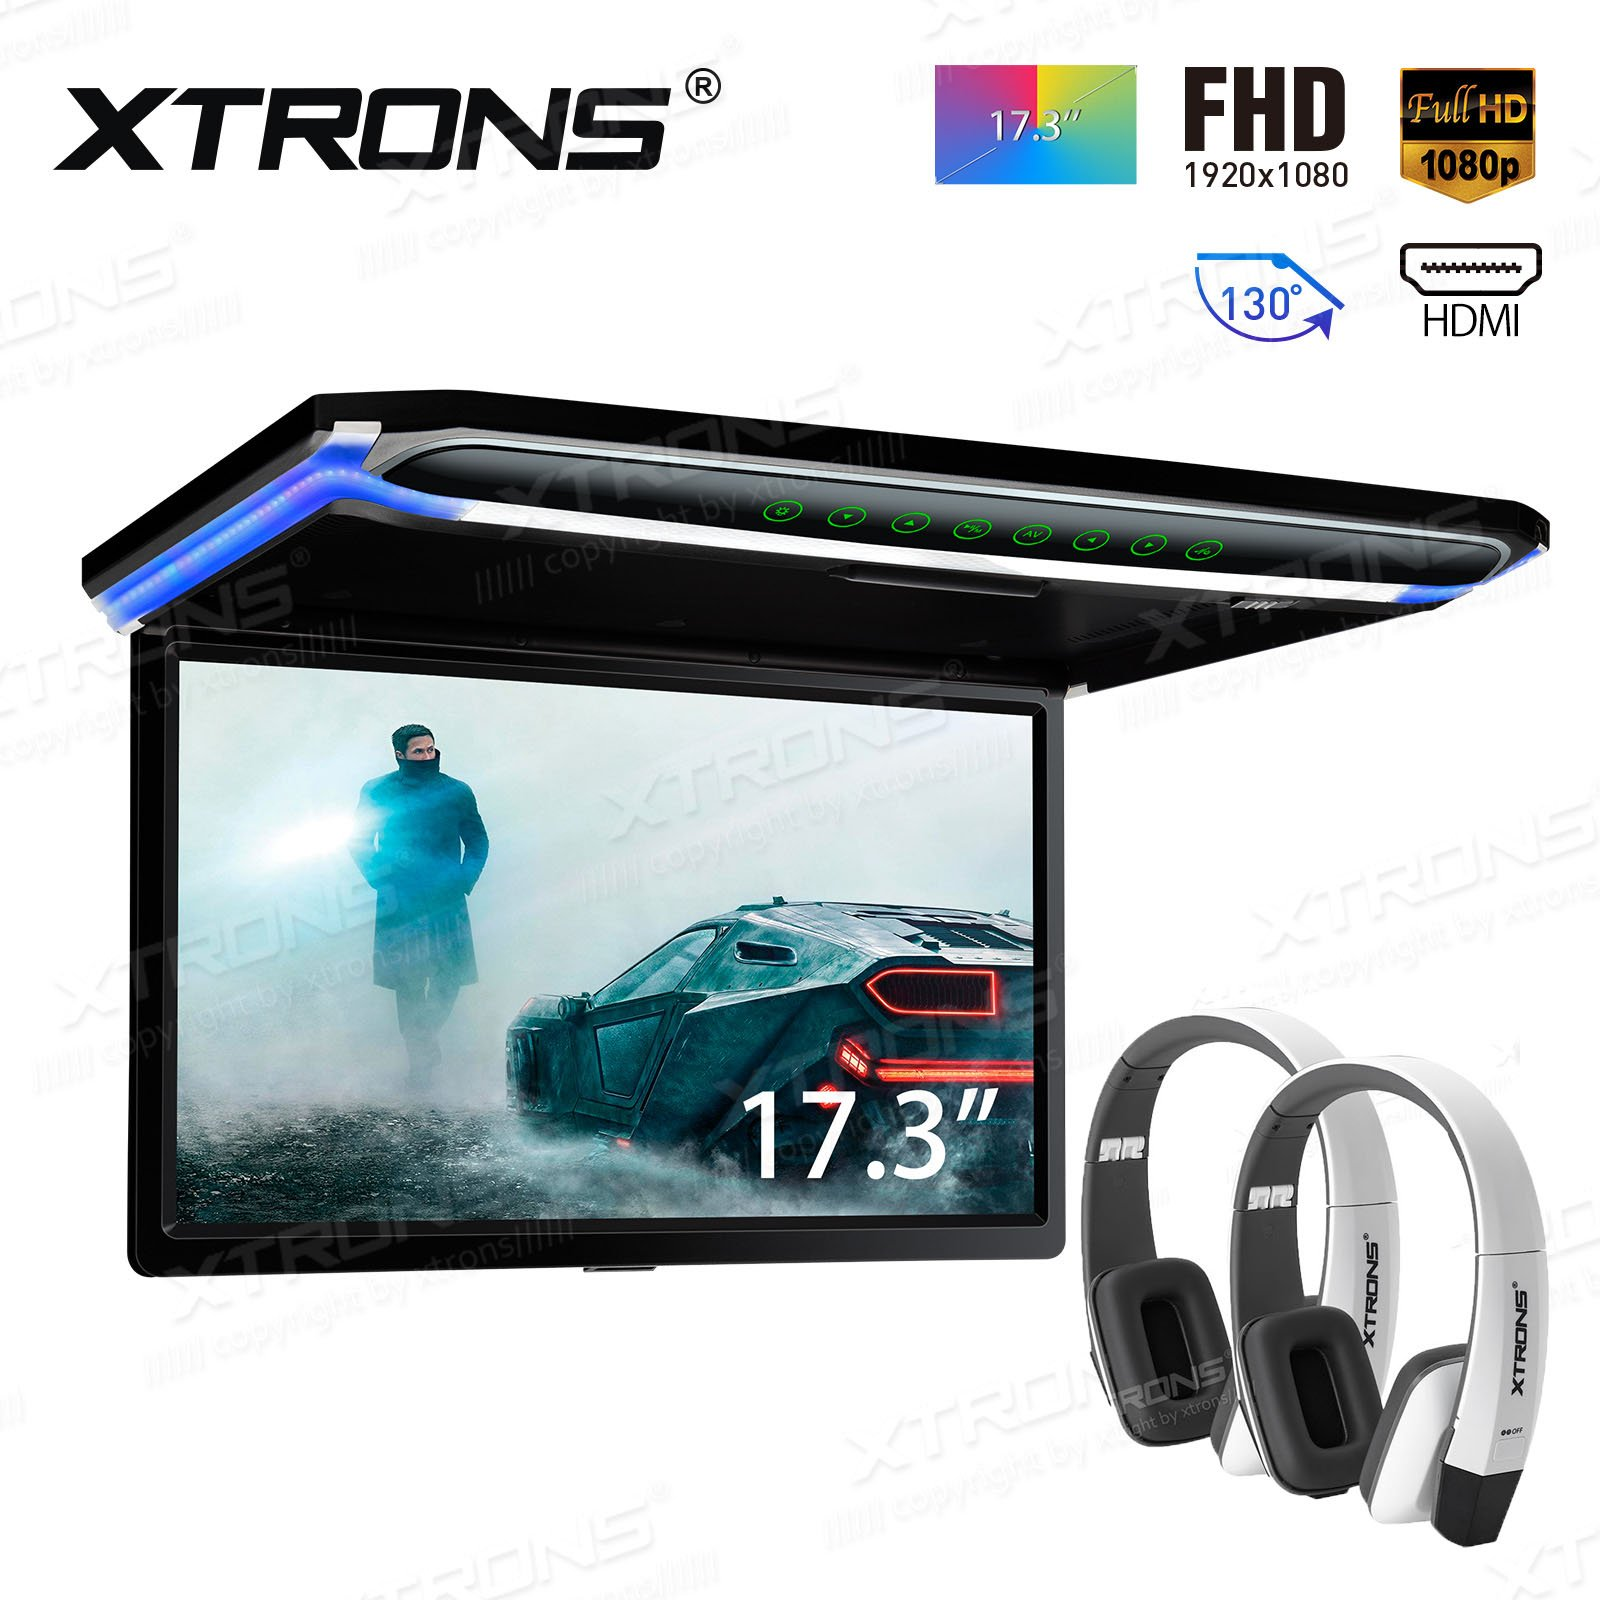 XTRONS 17.3 Inch 16:9 Ultra-Thin FHD Digital TFT Screen 1080P Video Car Overhead Player Roof Mounted Monitor HDMI Port 19201080 Full High Definition New Version White IR Headphones